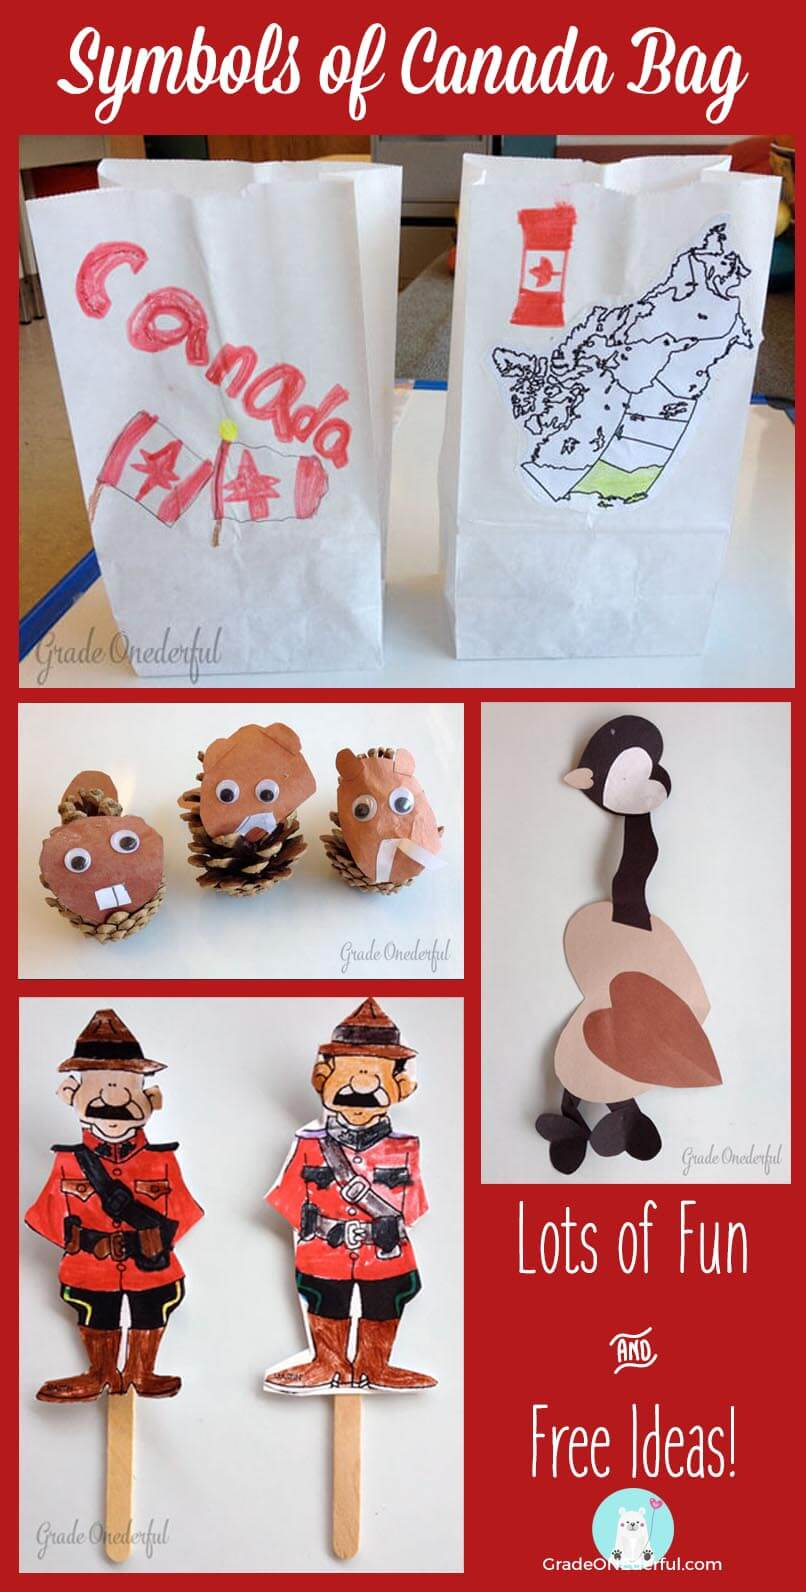 Symbols of Canada Bag. Perfect for 1st and 2nd Grade. Lots of fun craft ideas to fill your Canada bag.